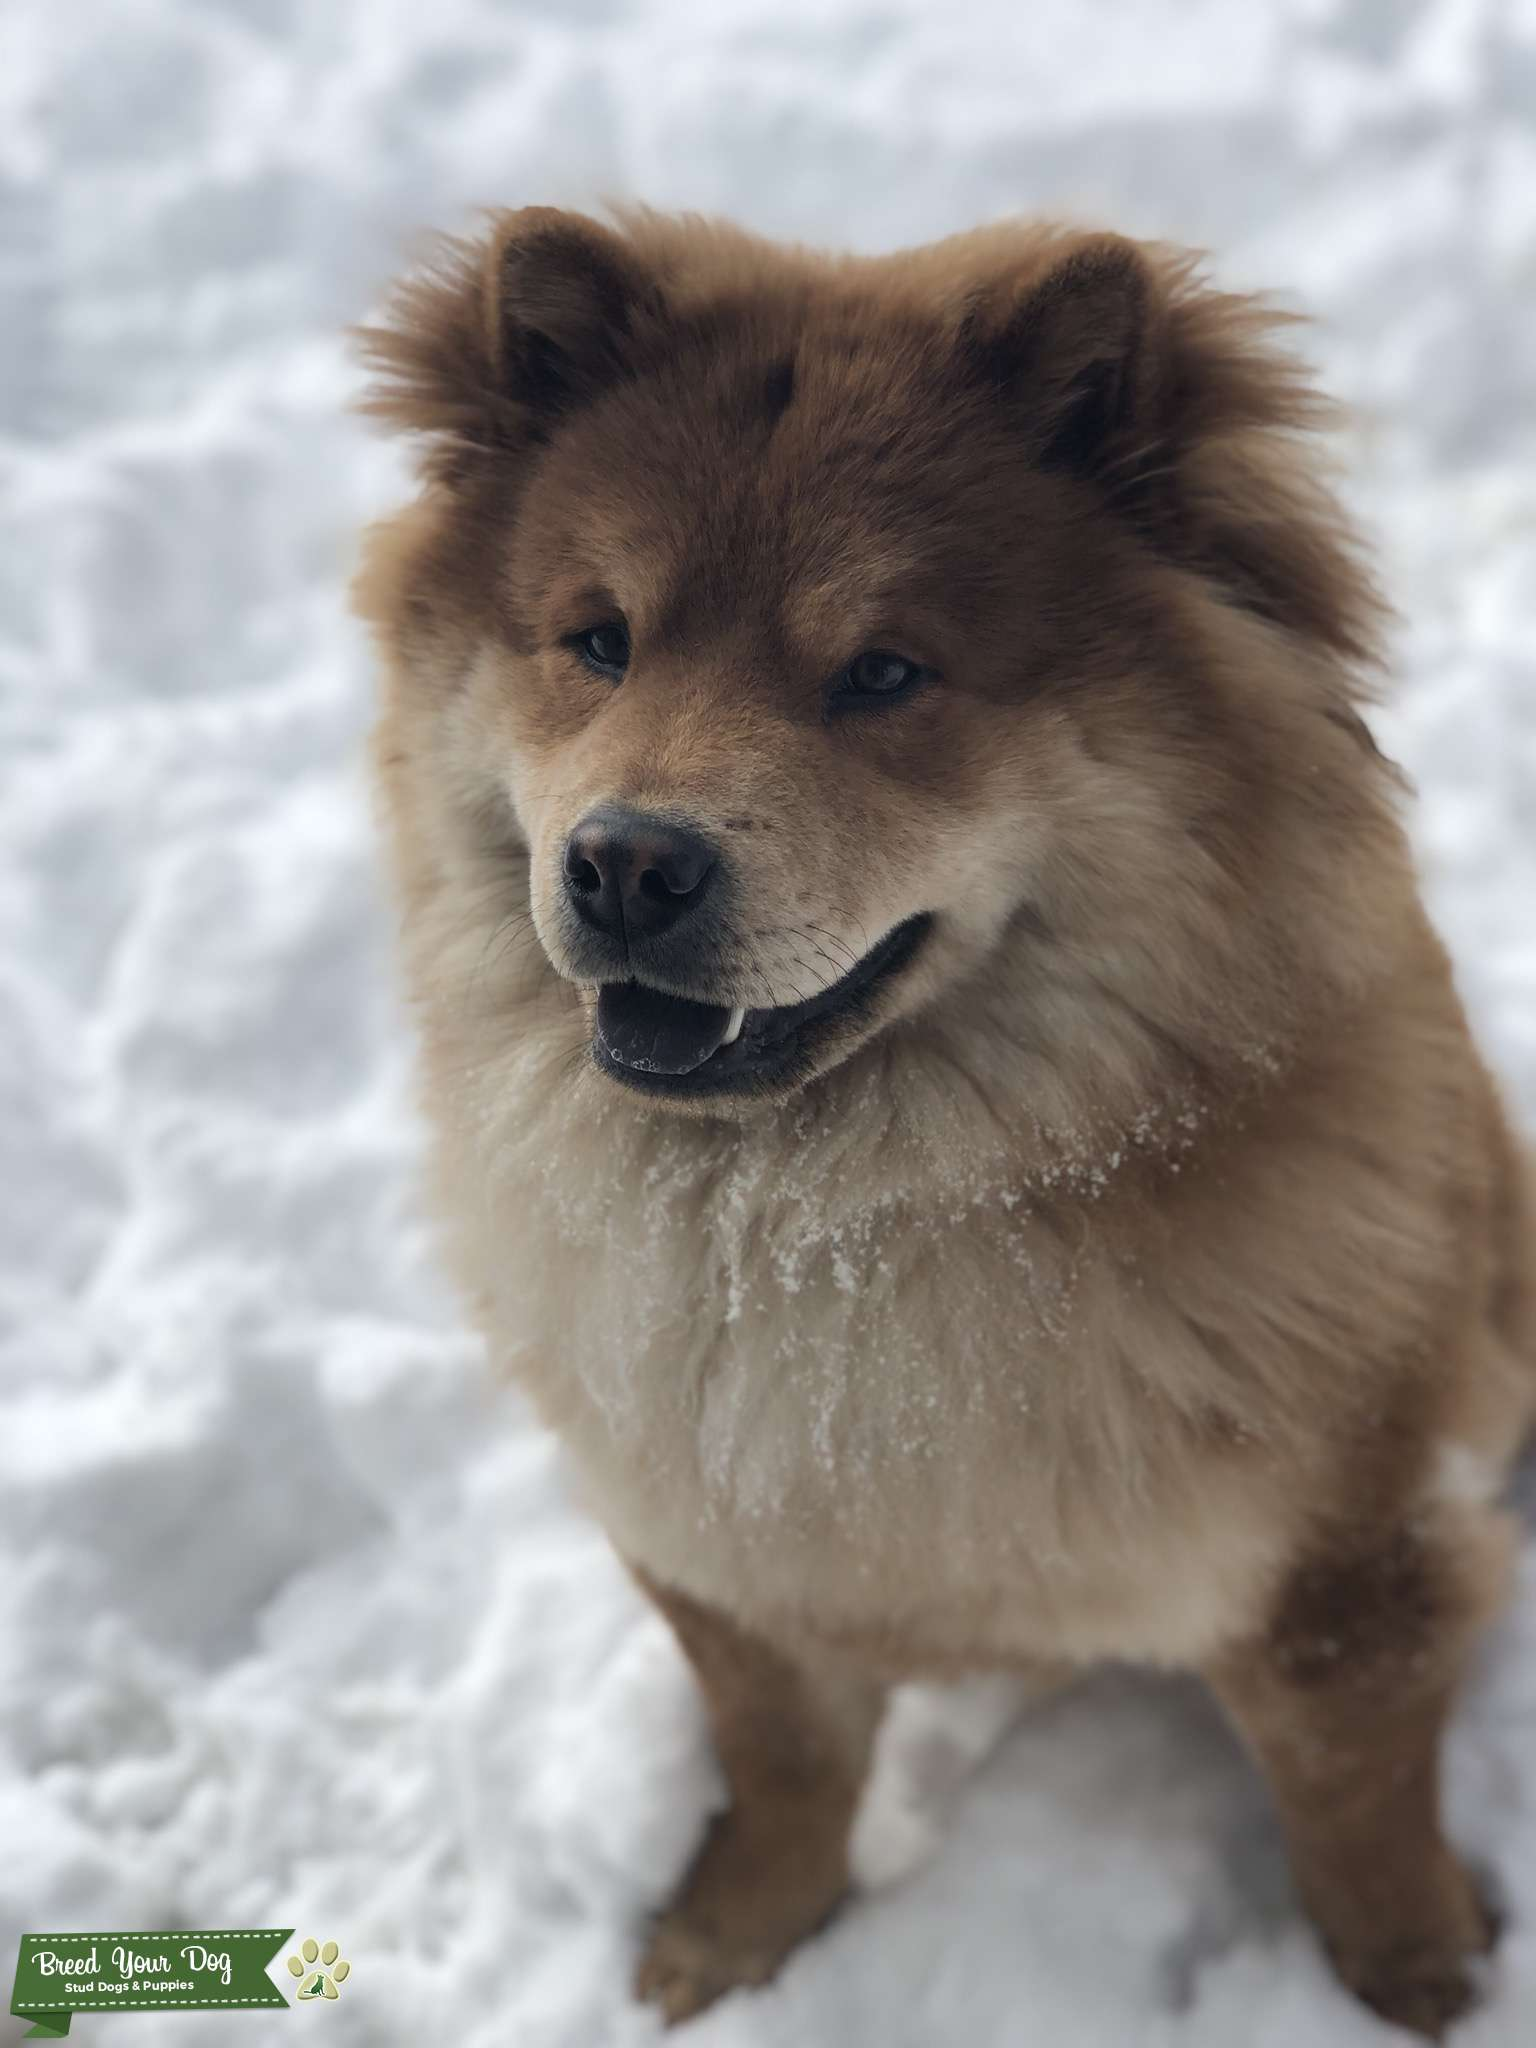 Stud Dog - Pure female chow chow looking for pure chow chow